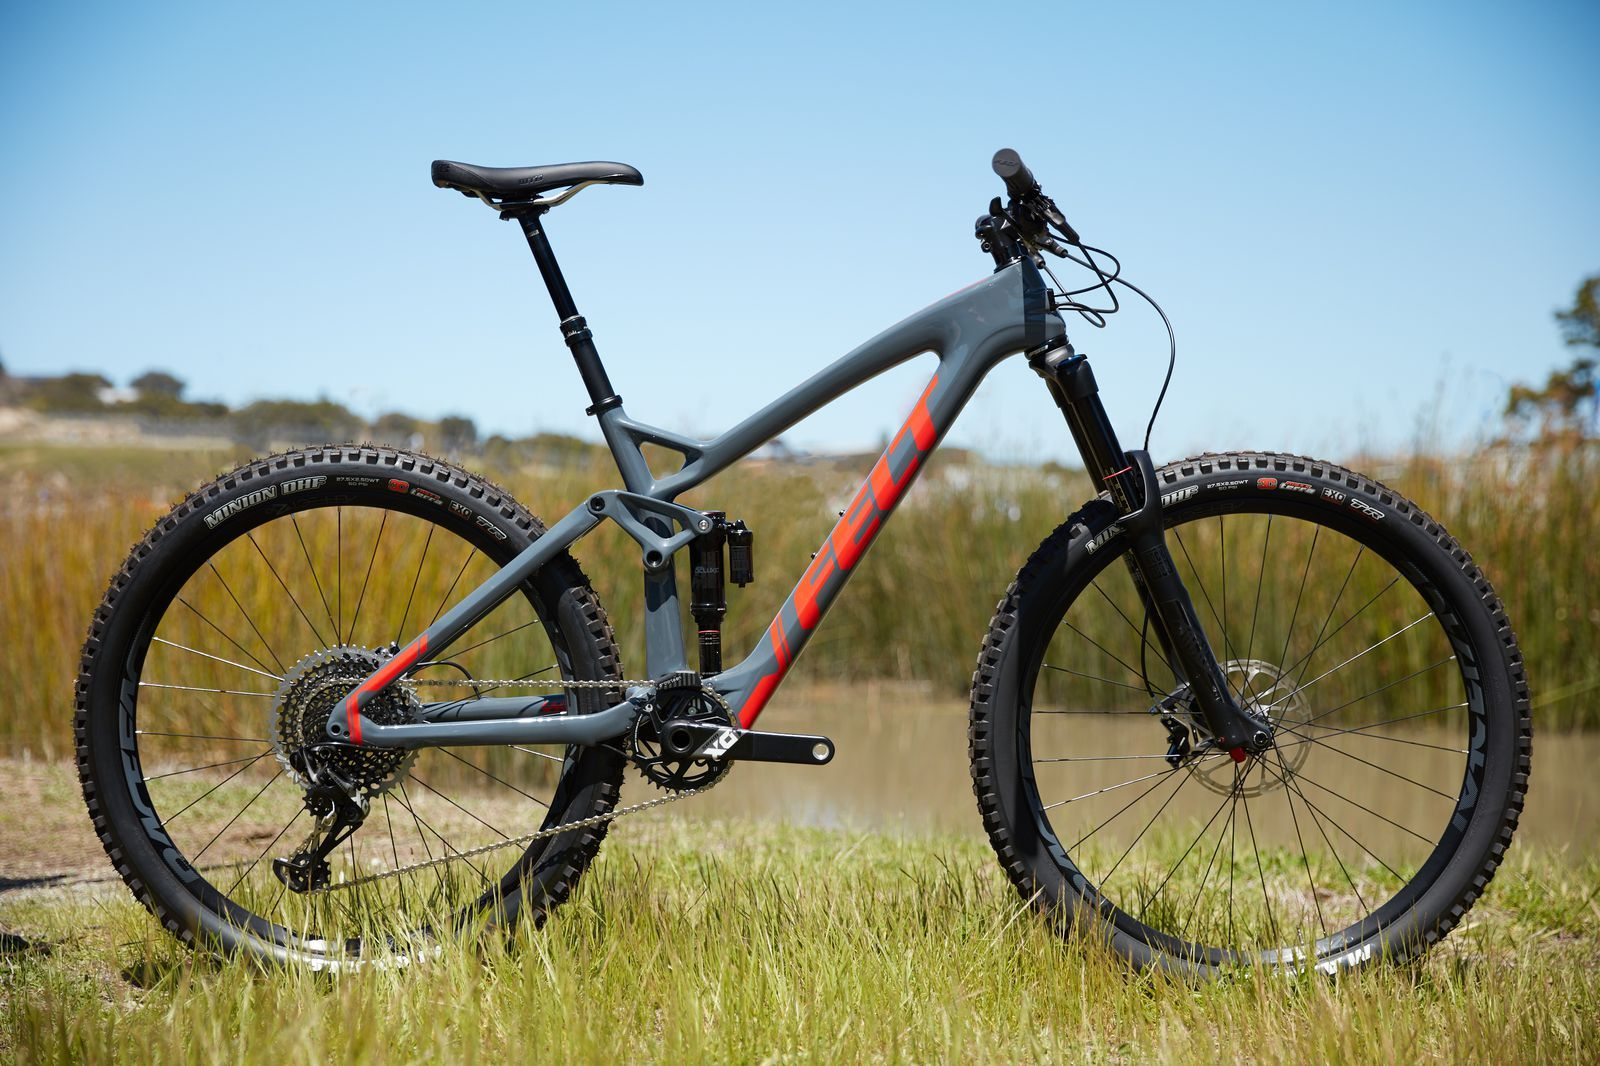 c28e083602e 2018 Felt F4X Rival 1 review | bikes | Trek mountain bike, Felt bikes,  Cycling wear